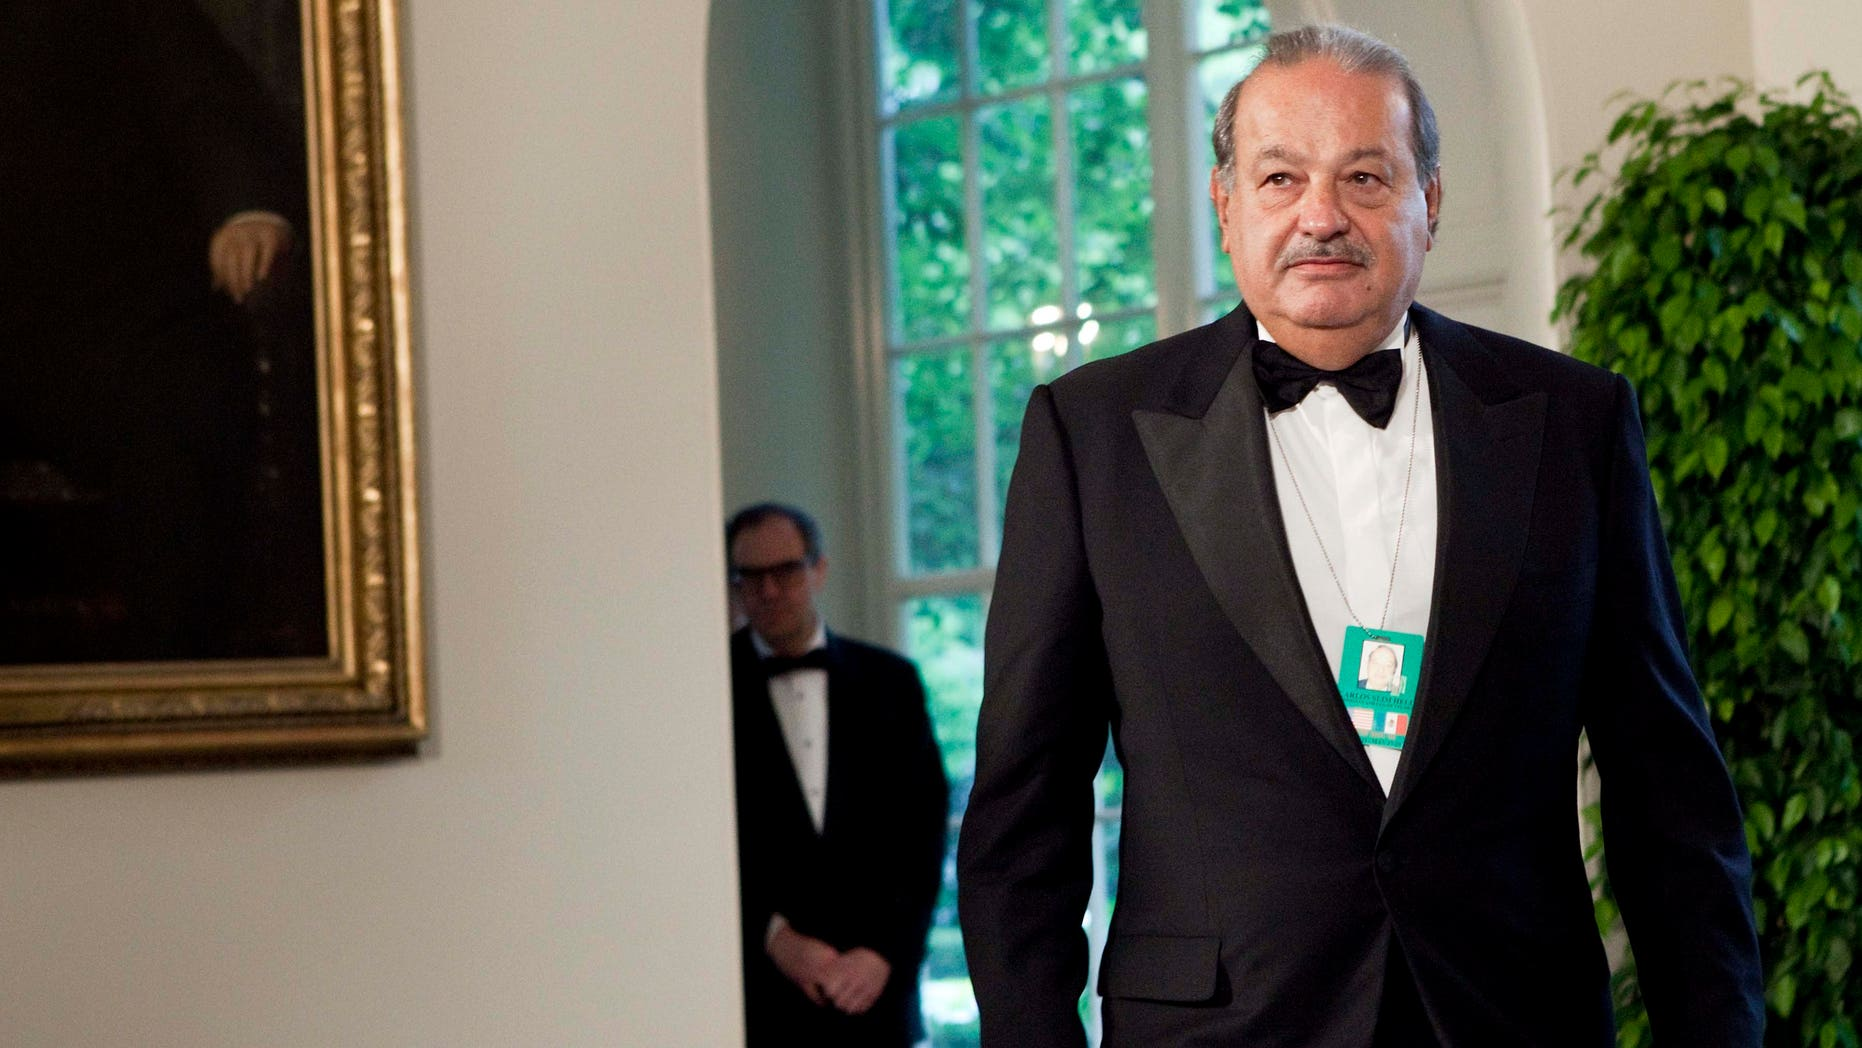 Carlos Slim, chairman and CEO of Telmex, Telcel and América Móvil, arrives at the White House for a state dinner May 19, 2010 in Washington, DC. (Photo by Brendan Smialowski/Getty Images)